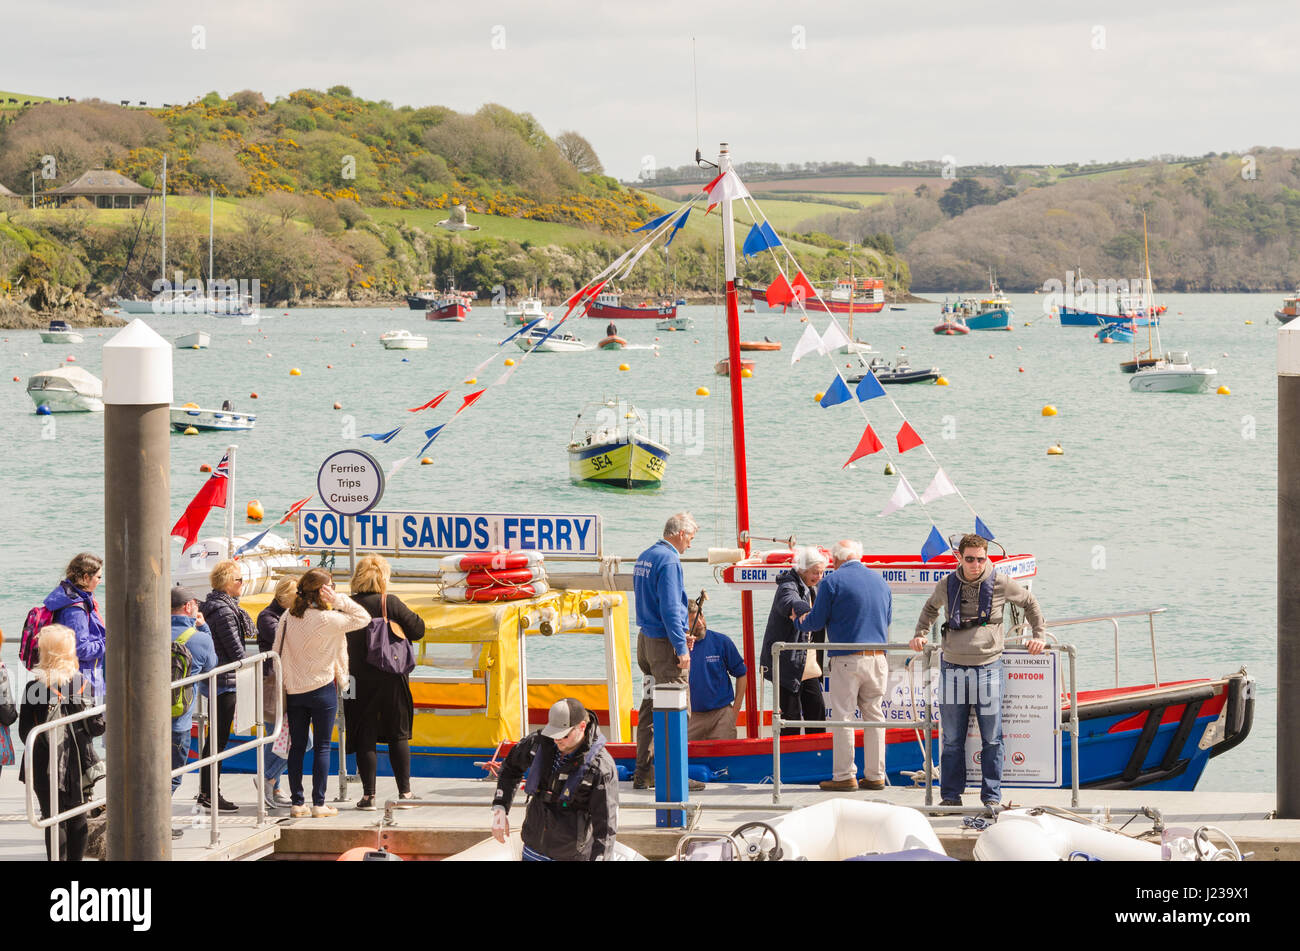 Passengers boarding the South Sands Ferry at Whitestrand in Salcombe, Devon - Stock Image